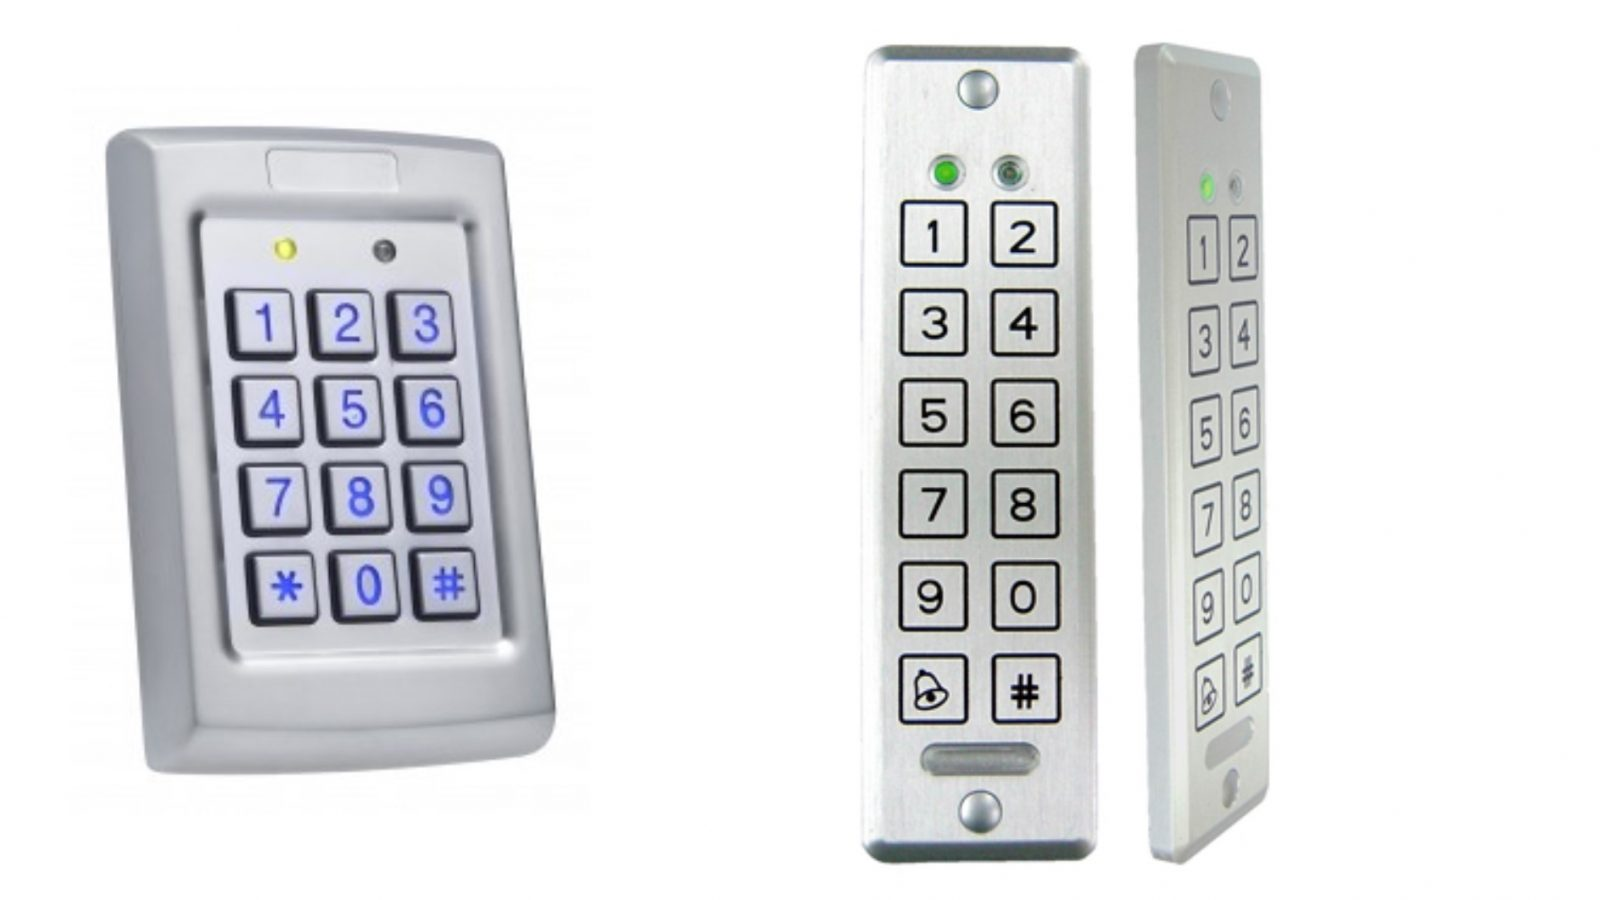 A popular access control option, keypads remove the need to issue multiple cards or fobs to authorized users. With wireless options available, as well as pietzo touch keypads, we have an option to suit your requirements.